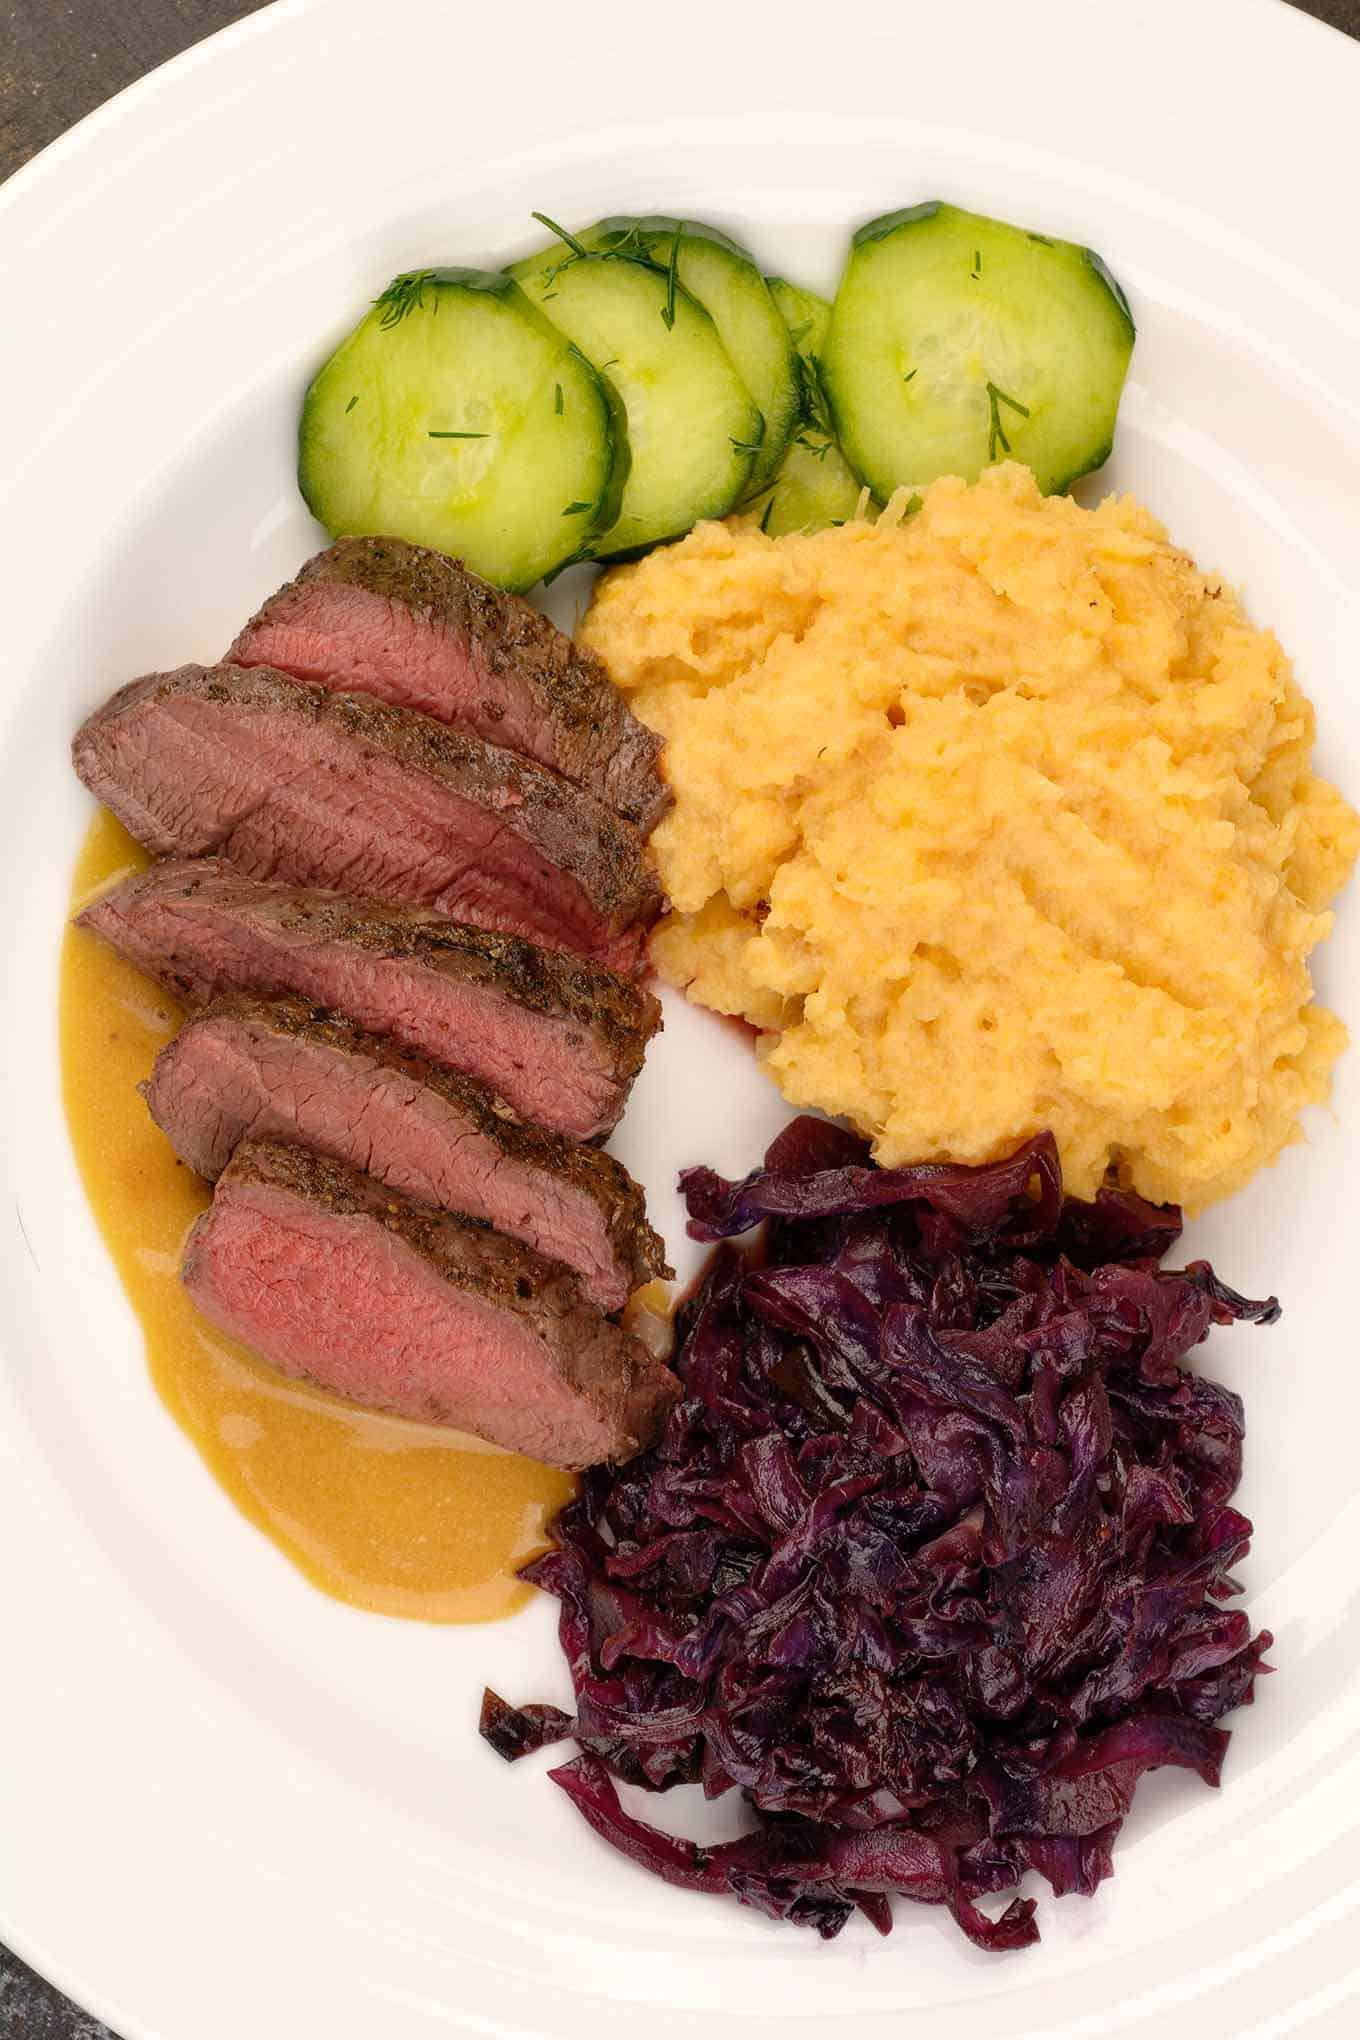 Slices of roasted venison tenderloin on a plate with Scandinavian-style side dishes